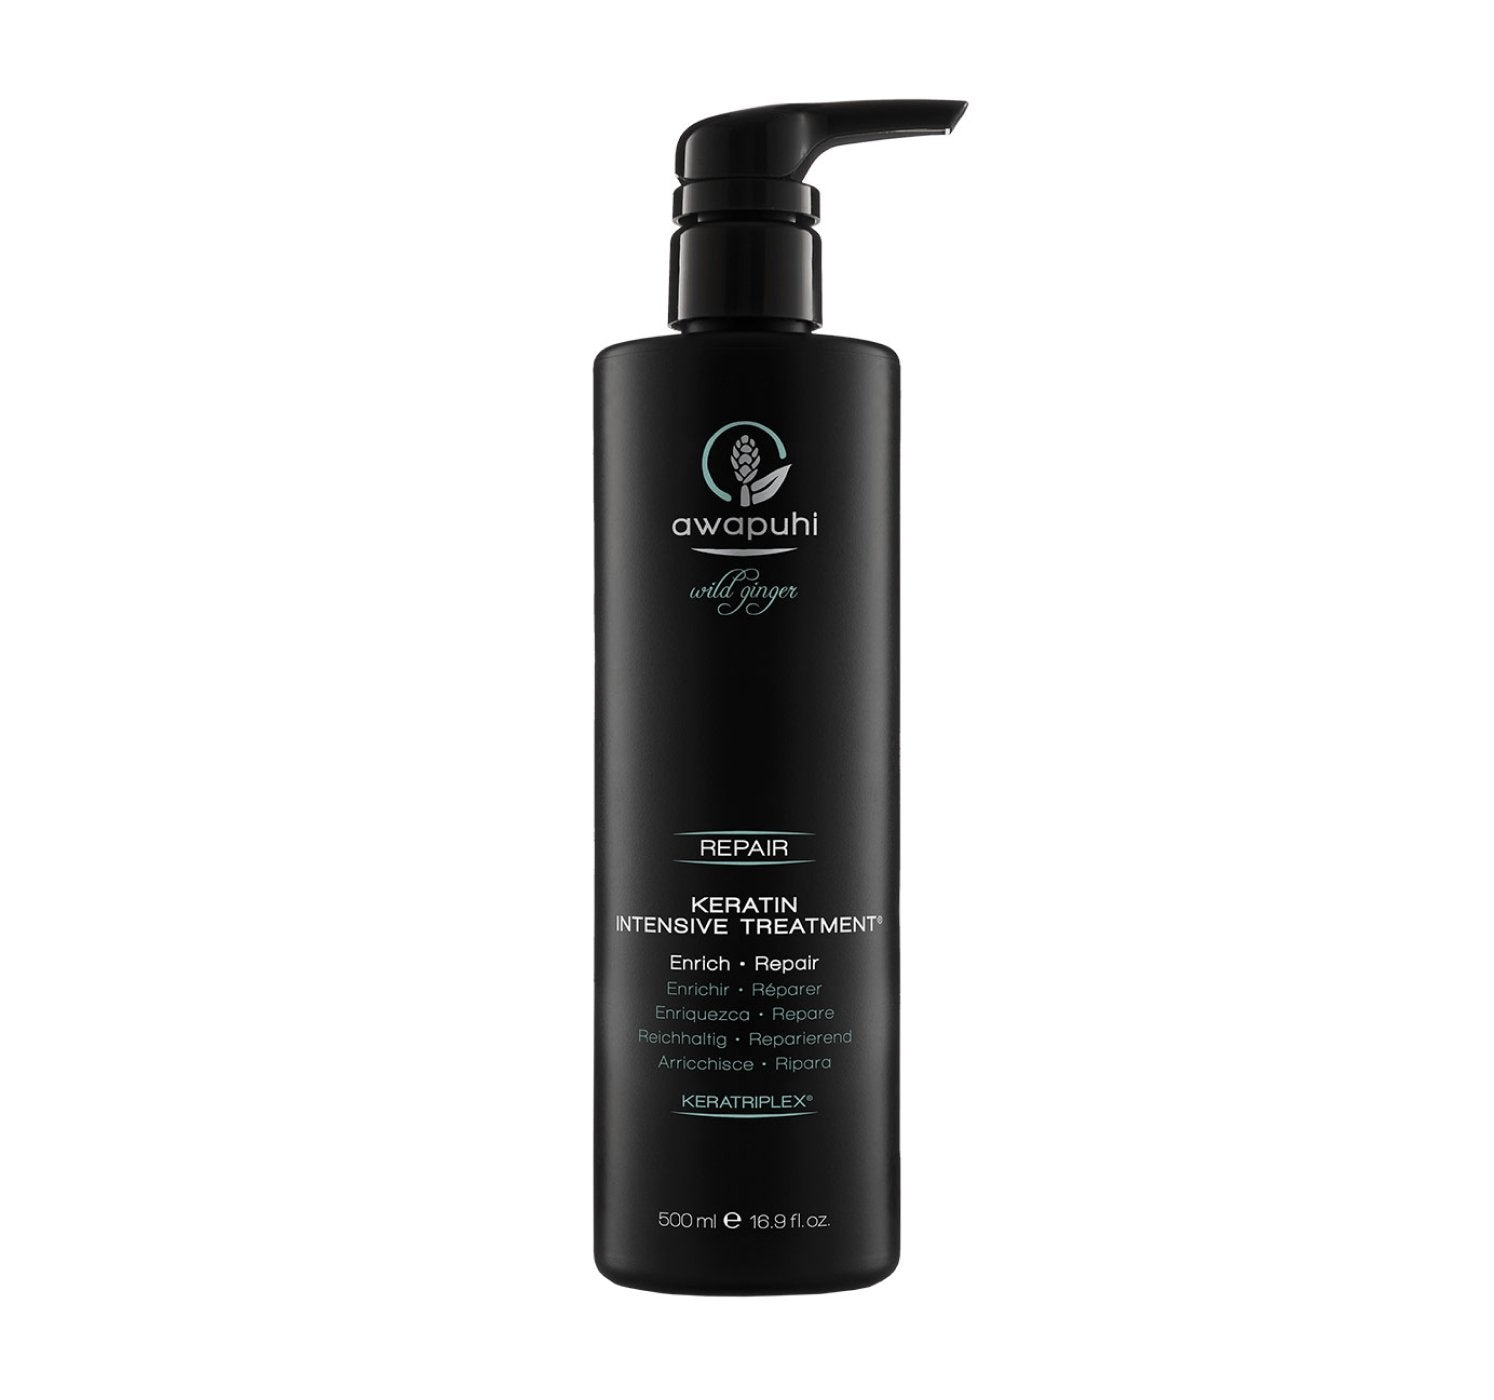 Paul Mitchell Awapuhi Keratin Intensive Treatment 500ml